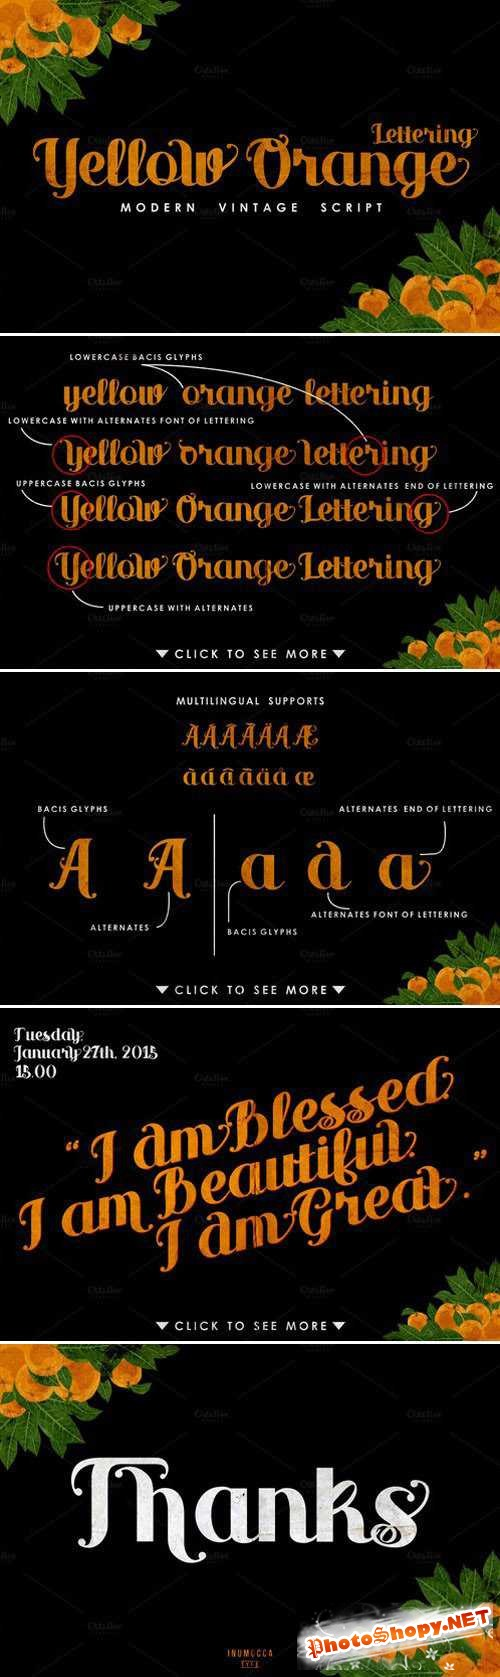 Yellow Orange Lettering Font